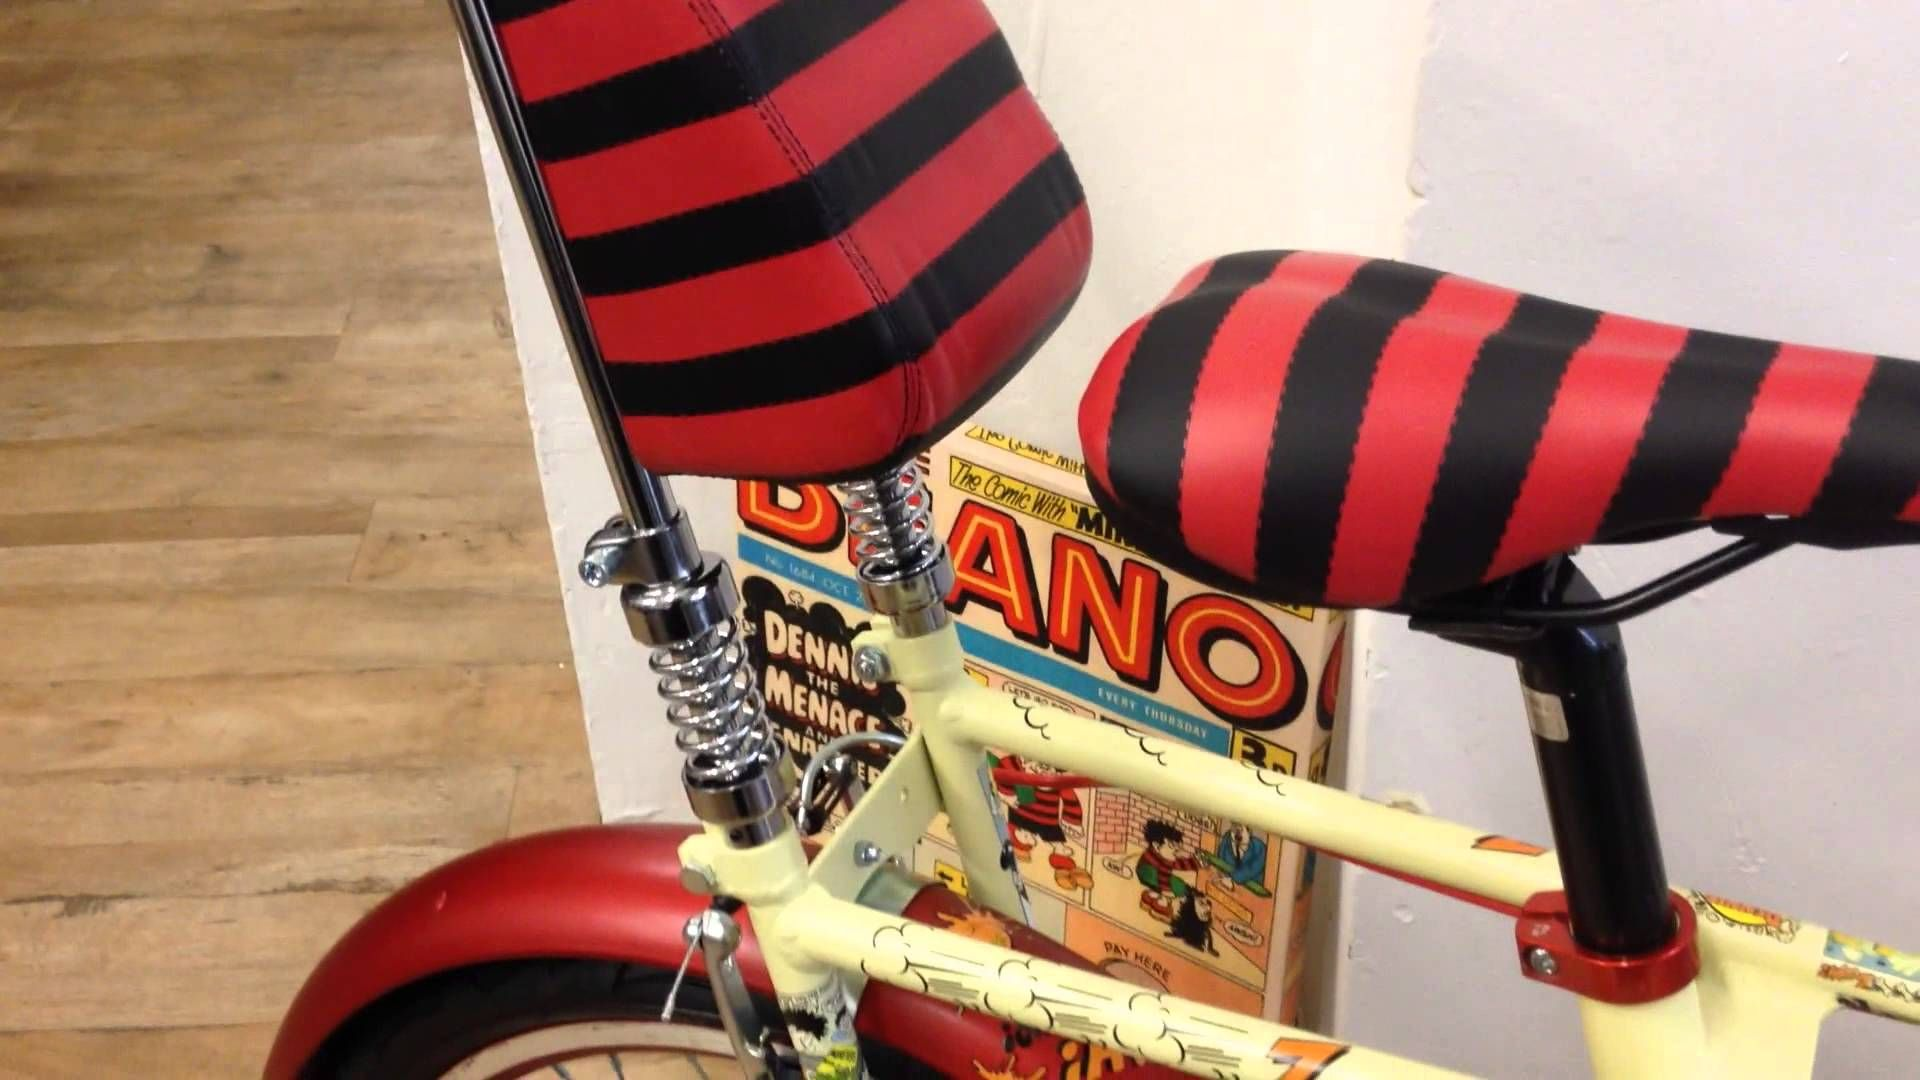 Raleigh Chopper Beano Limited Edition Dennis the Menace 2014 | Geeky